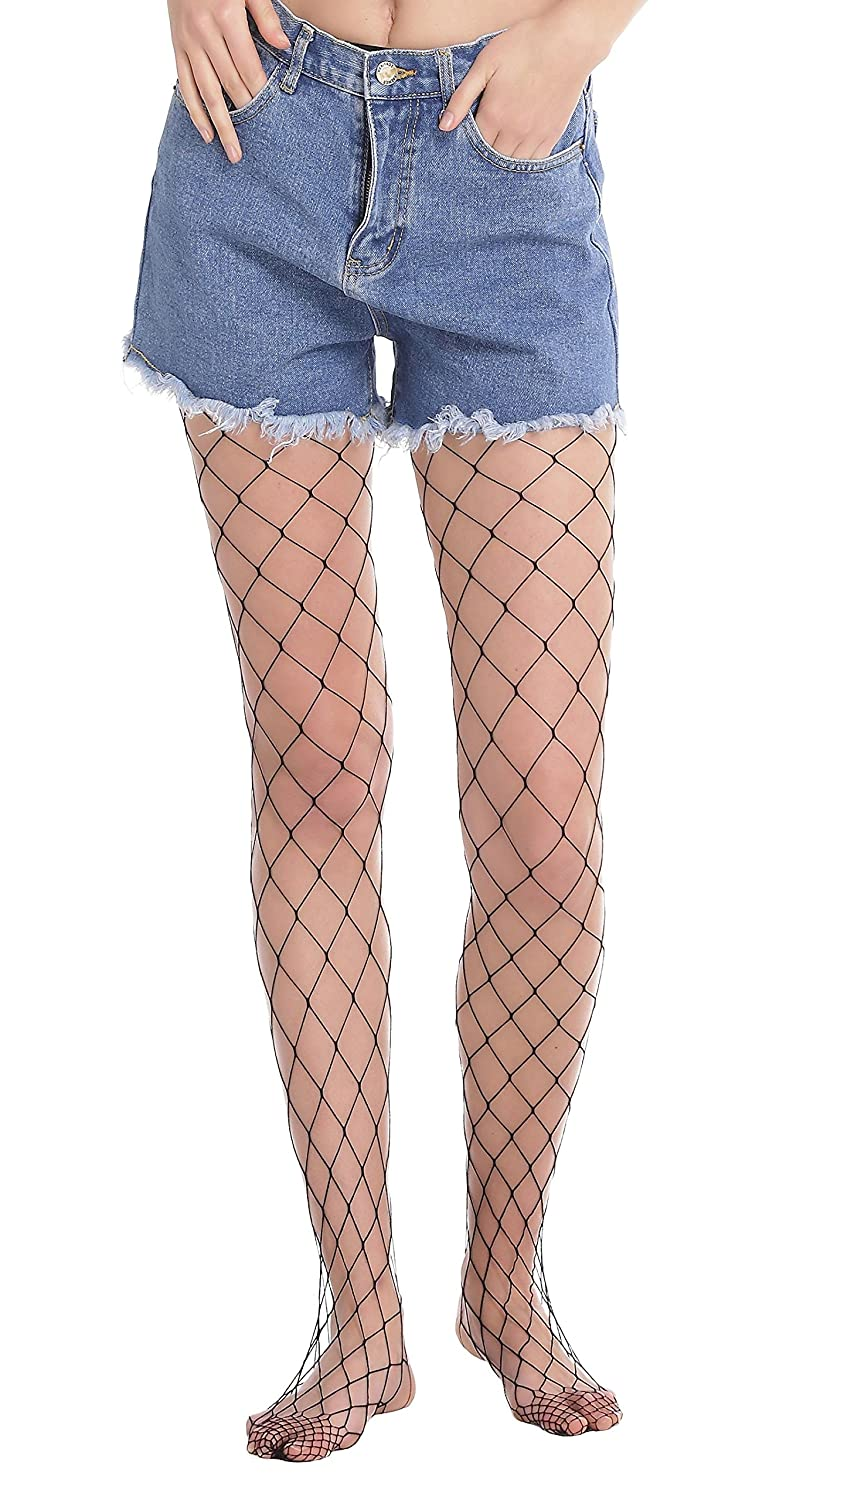 Abollria Girls Ladies Fishnet Stockings Tights Pantyhose Black Red White One Size aMN00002_ B_L